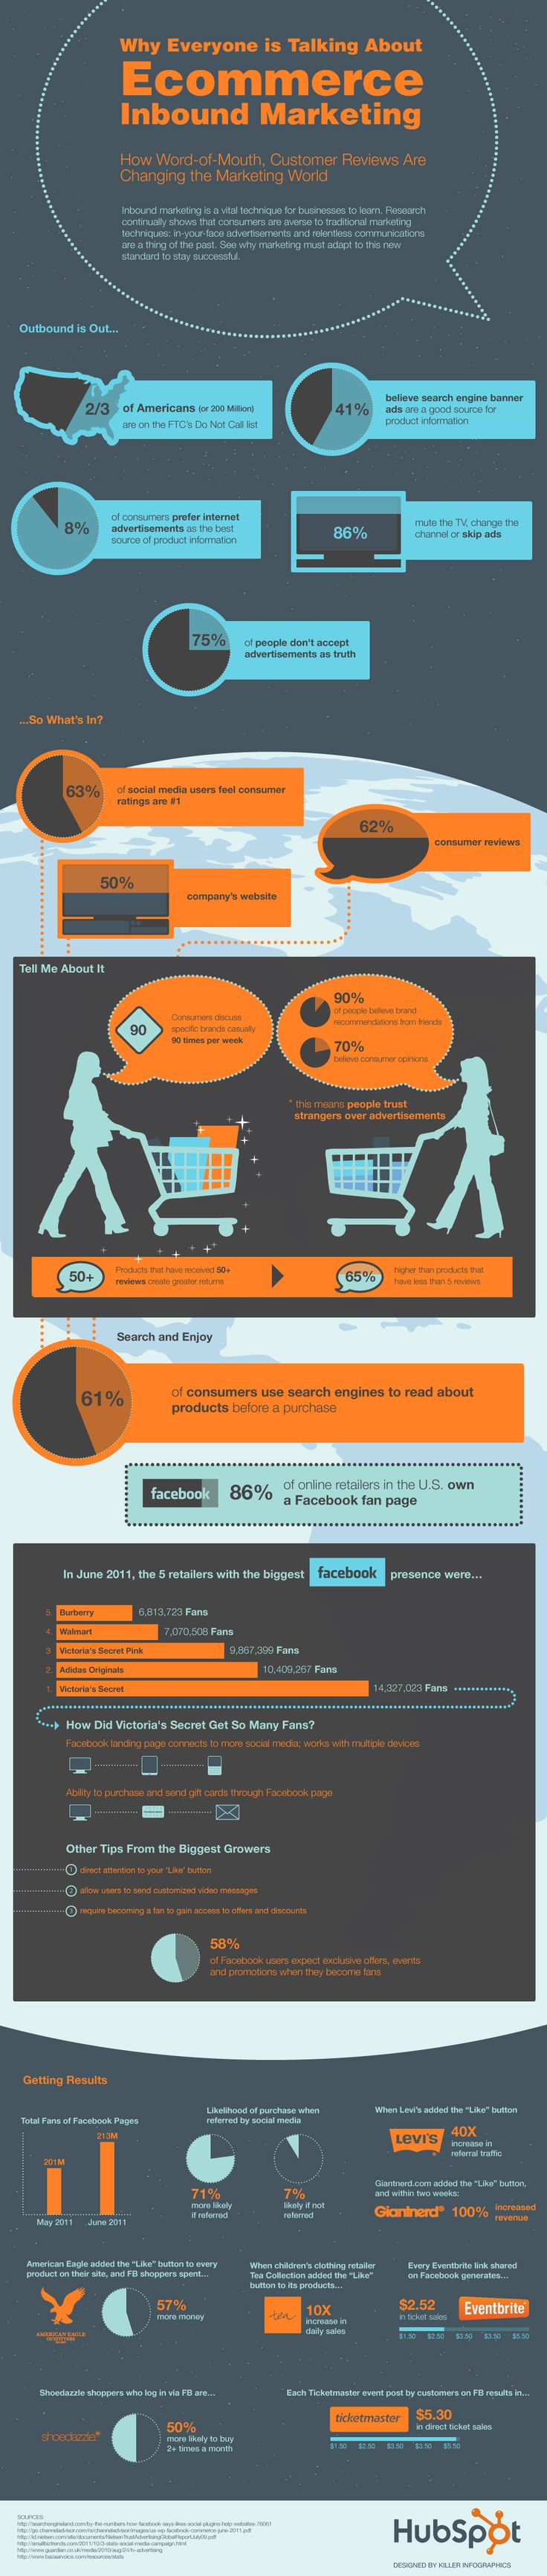 71% More Likely to Purchase Based on Social Media Referrals [Infographic]    Read more: http://blog.hubspot.com/blog/tabid/6307/bid/30239/71-More-Likely-to-Purchase-Based-on-Social-Media-Referrals-Infographic.aspx#ixzz1jAgtYBXX